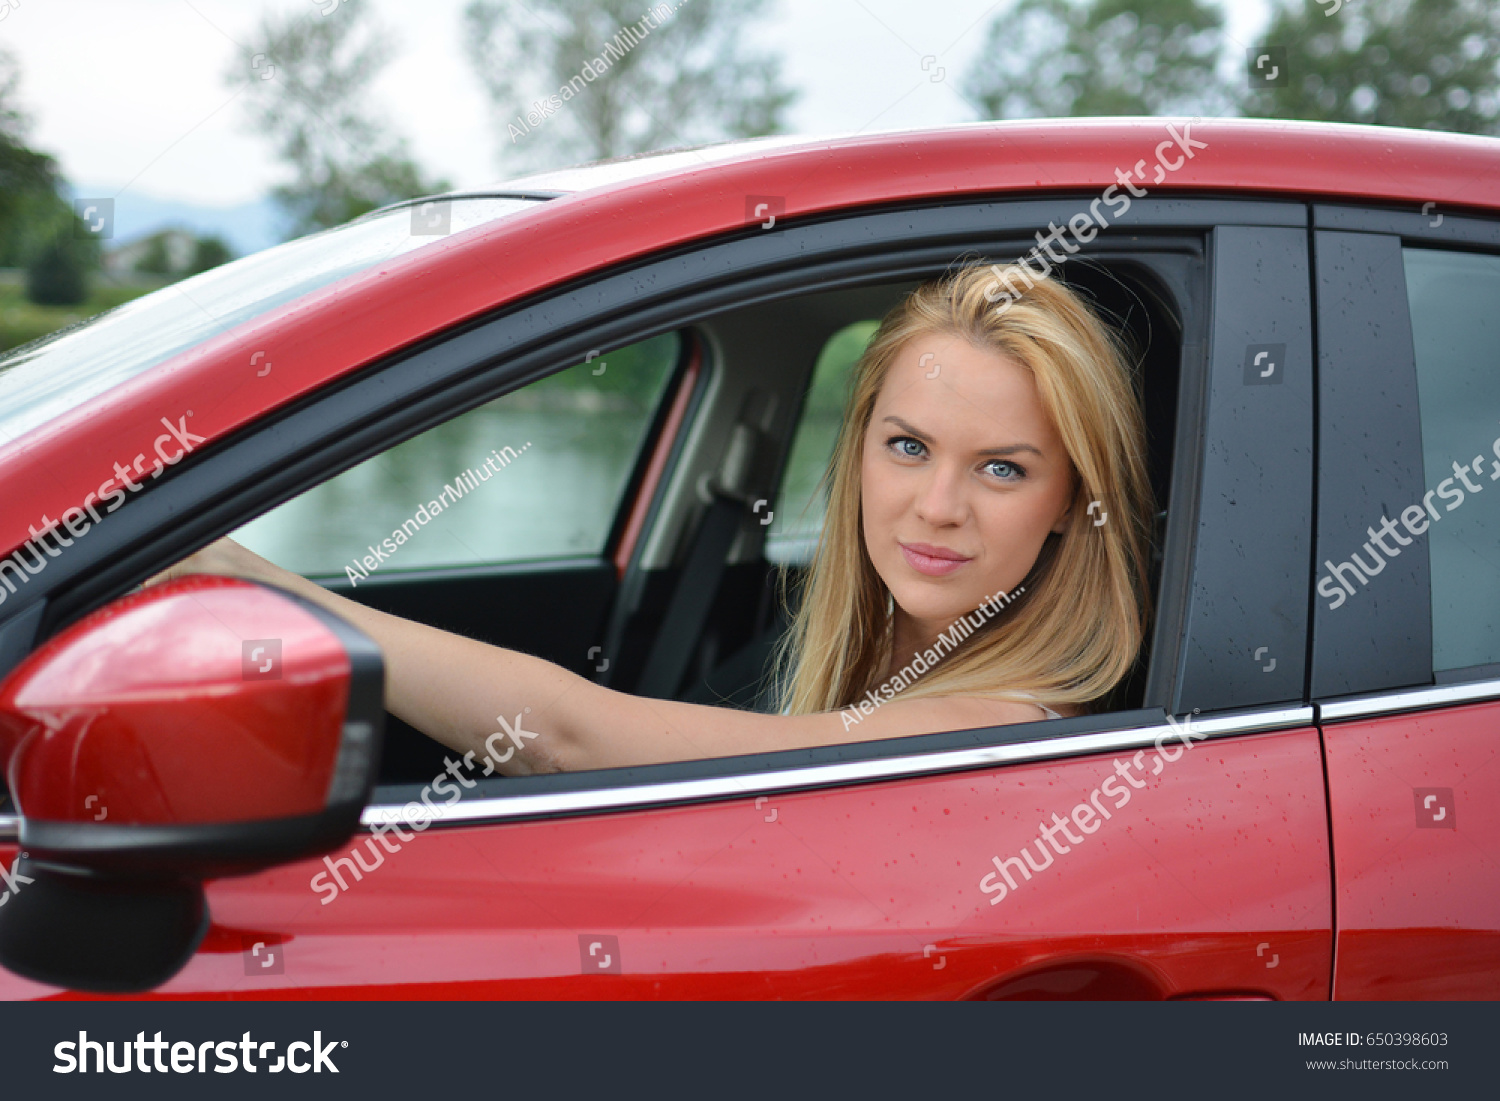 650398603 Photo Beautiful Blonde Young edit Driving Girl Stock Slowly Now